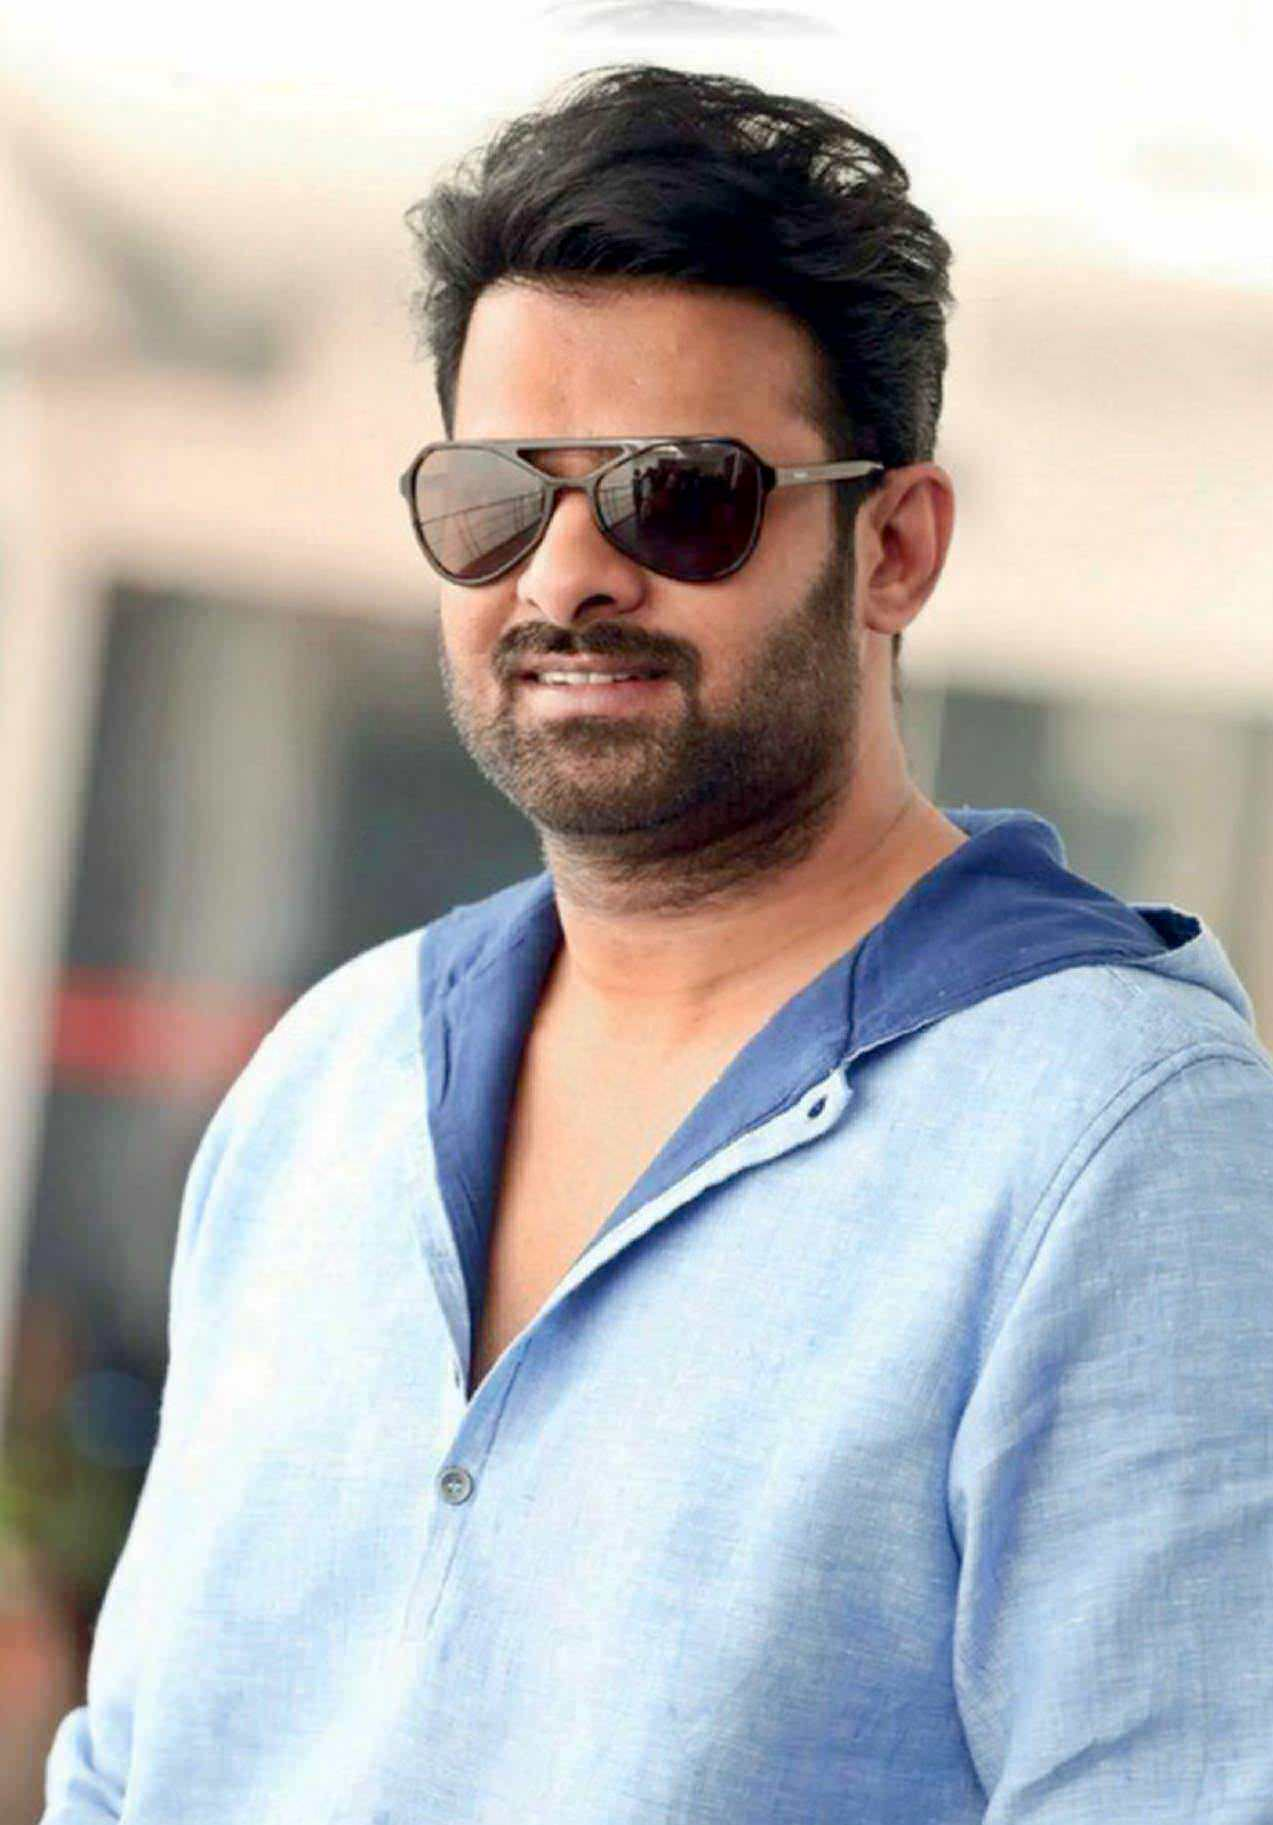 Prabhas to make special announcement about new film Radhe Shyam on 41st birthday